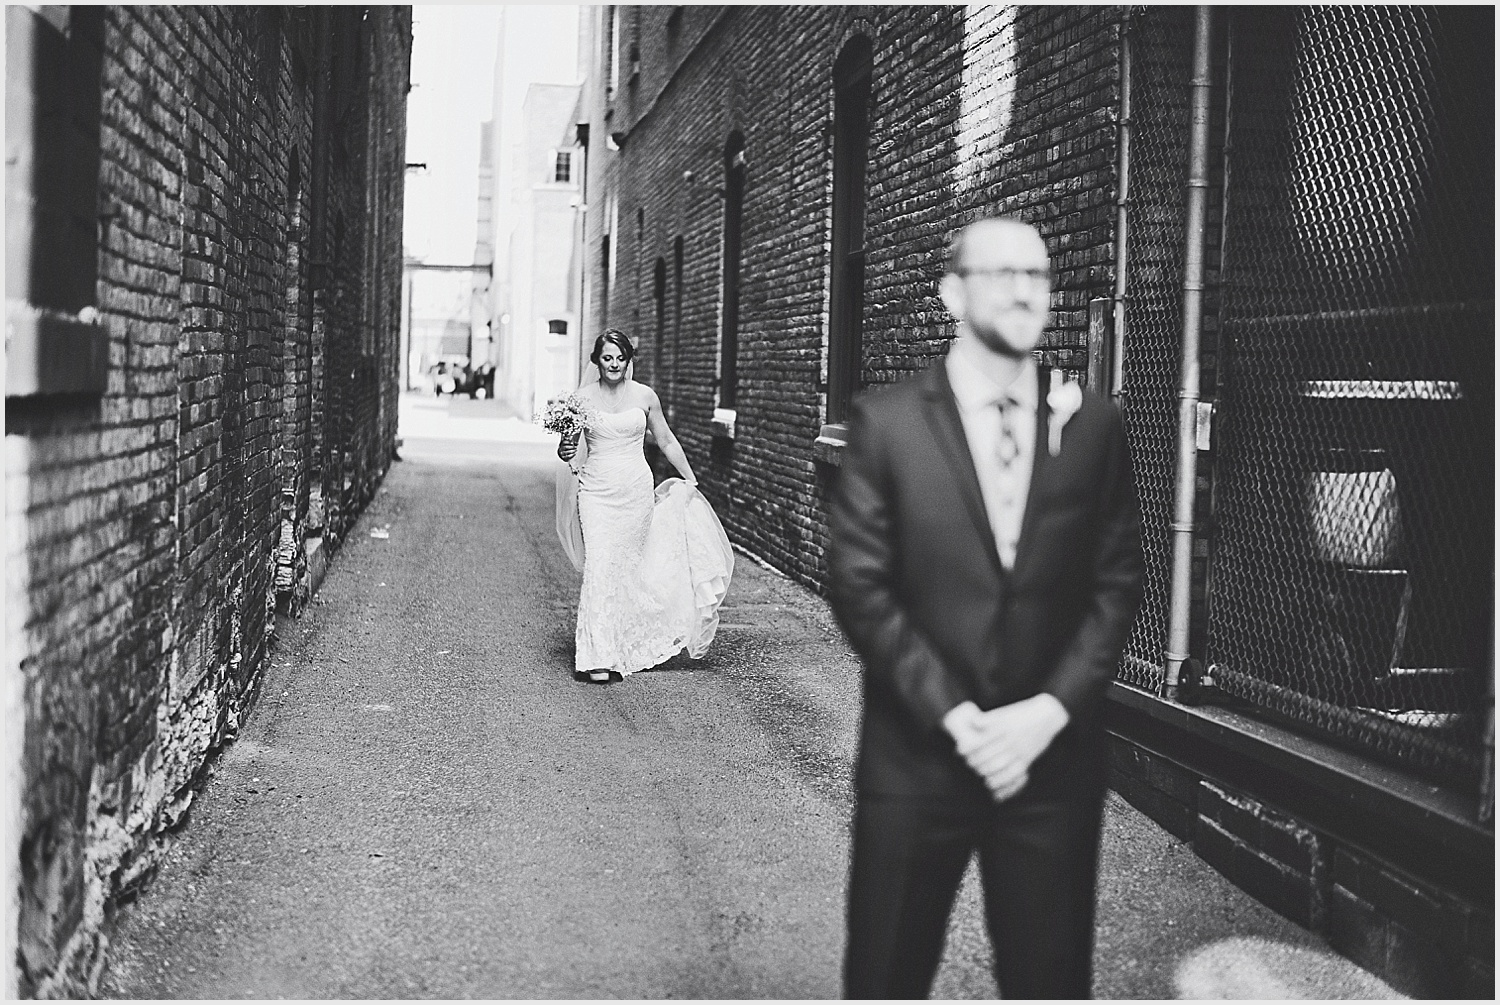 stpaul_wedding_lucas_botz_photography_003.jpg